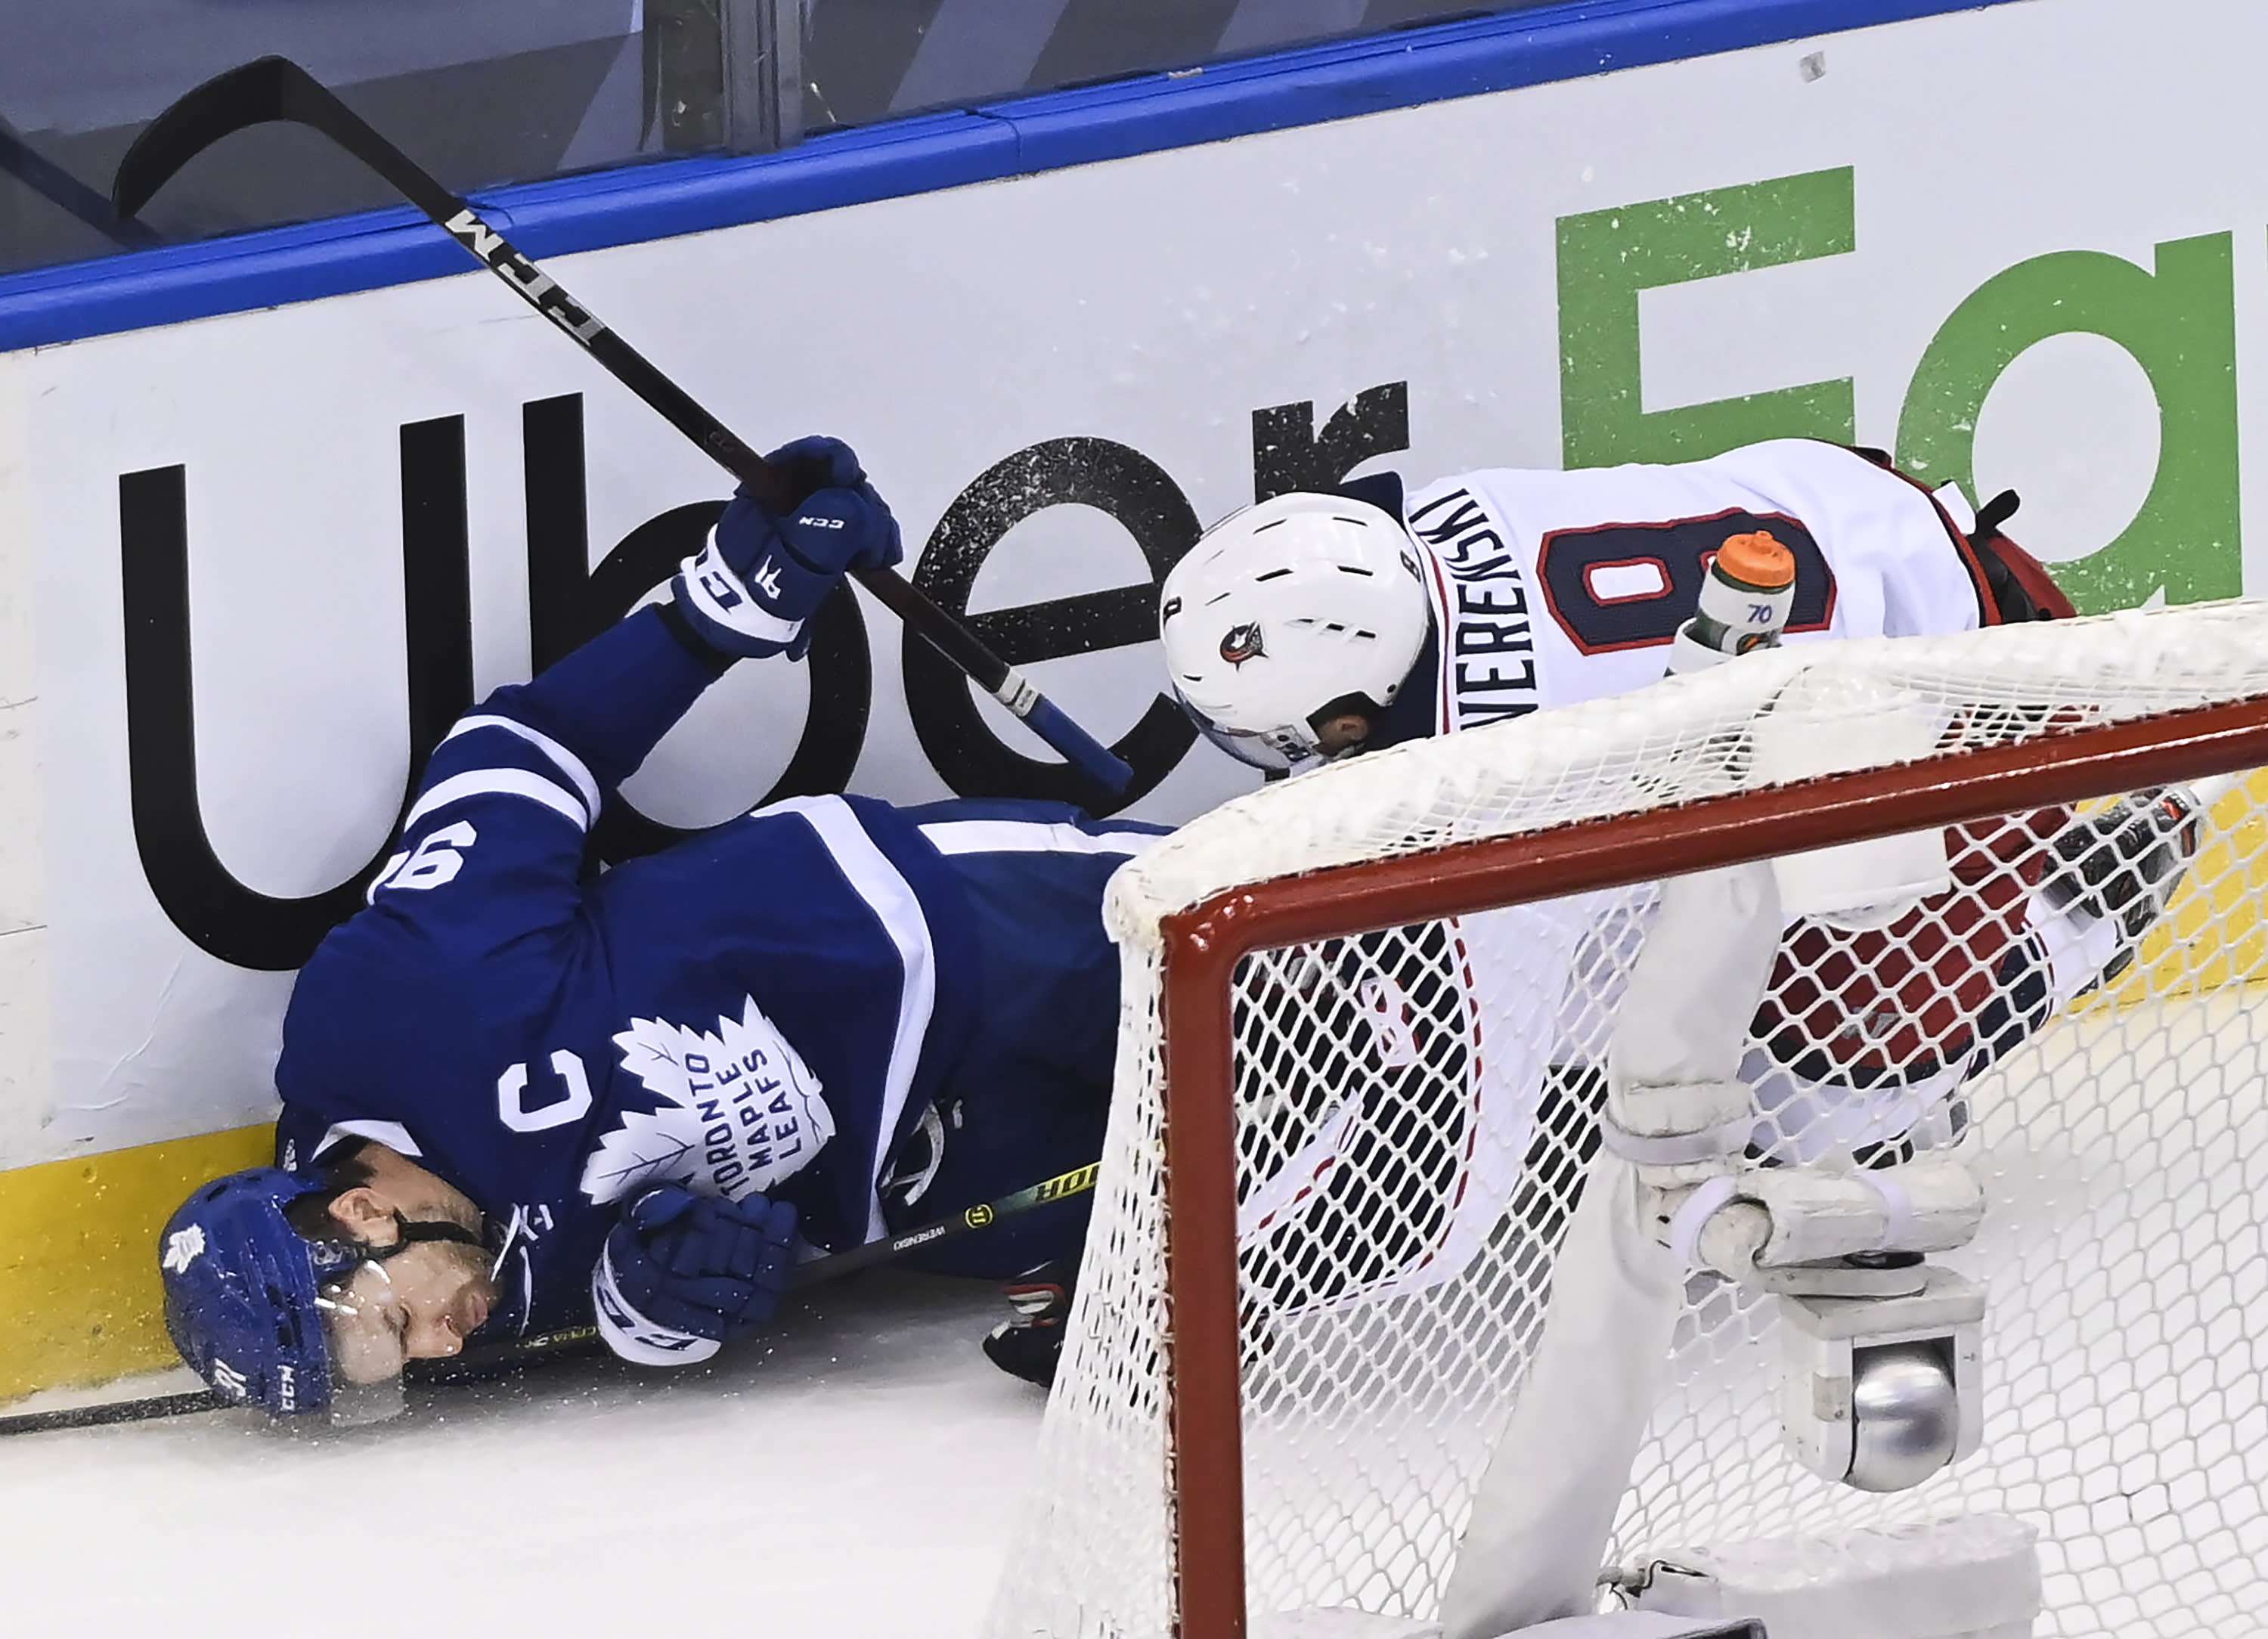 Columbus Blue Jackets defenseman Zach Werenski (8) takes out Toronto Maple Leafs centre John Tavares (91) during the first period of an NHL hockey playoff game Sunday, Aug. 9, 2020, in Toronto. (Nathan Denette/The Canadian Press via AP)